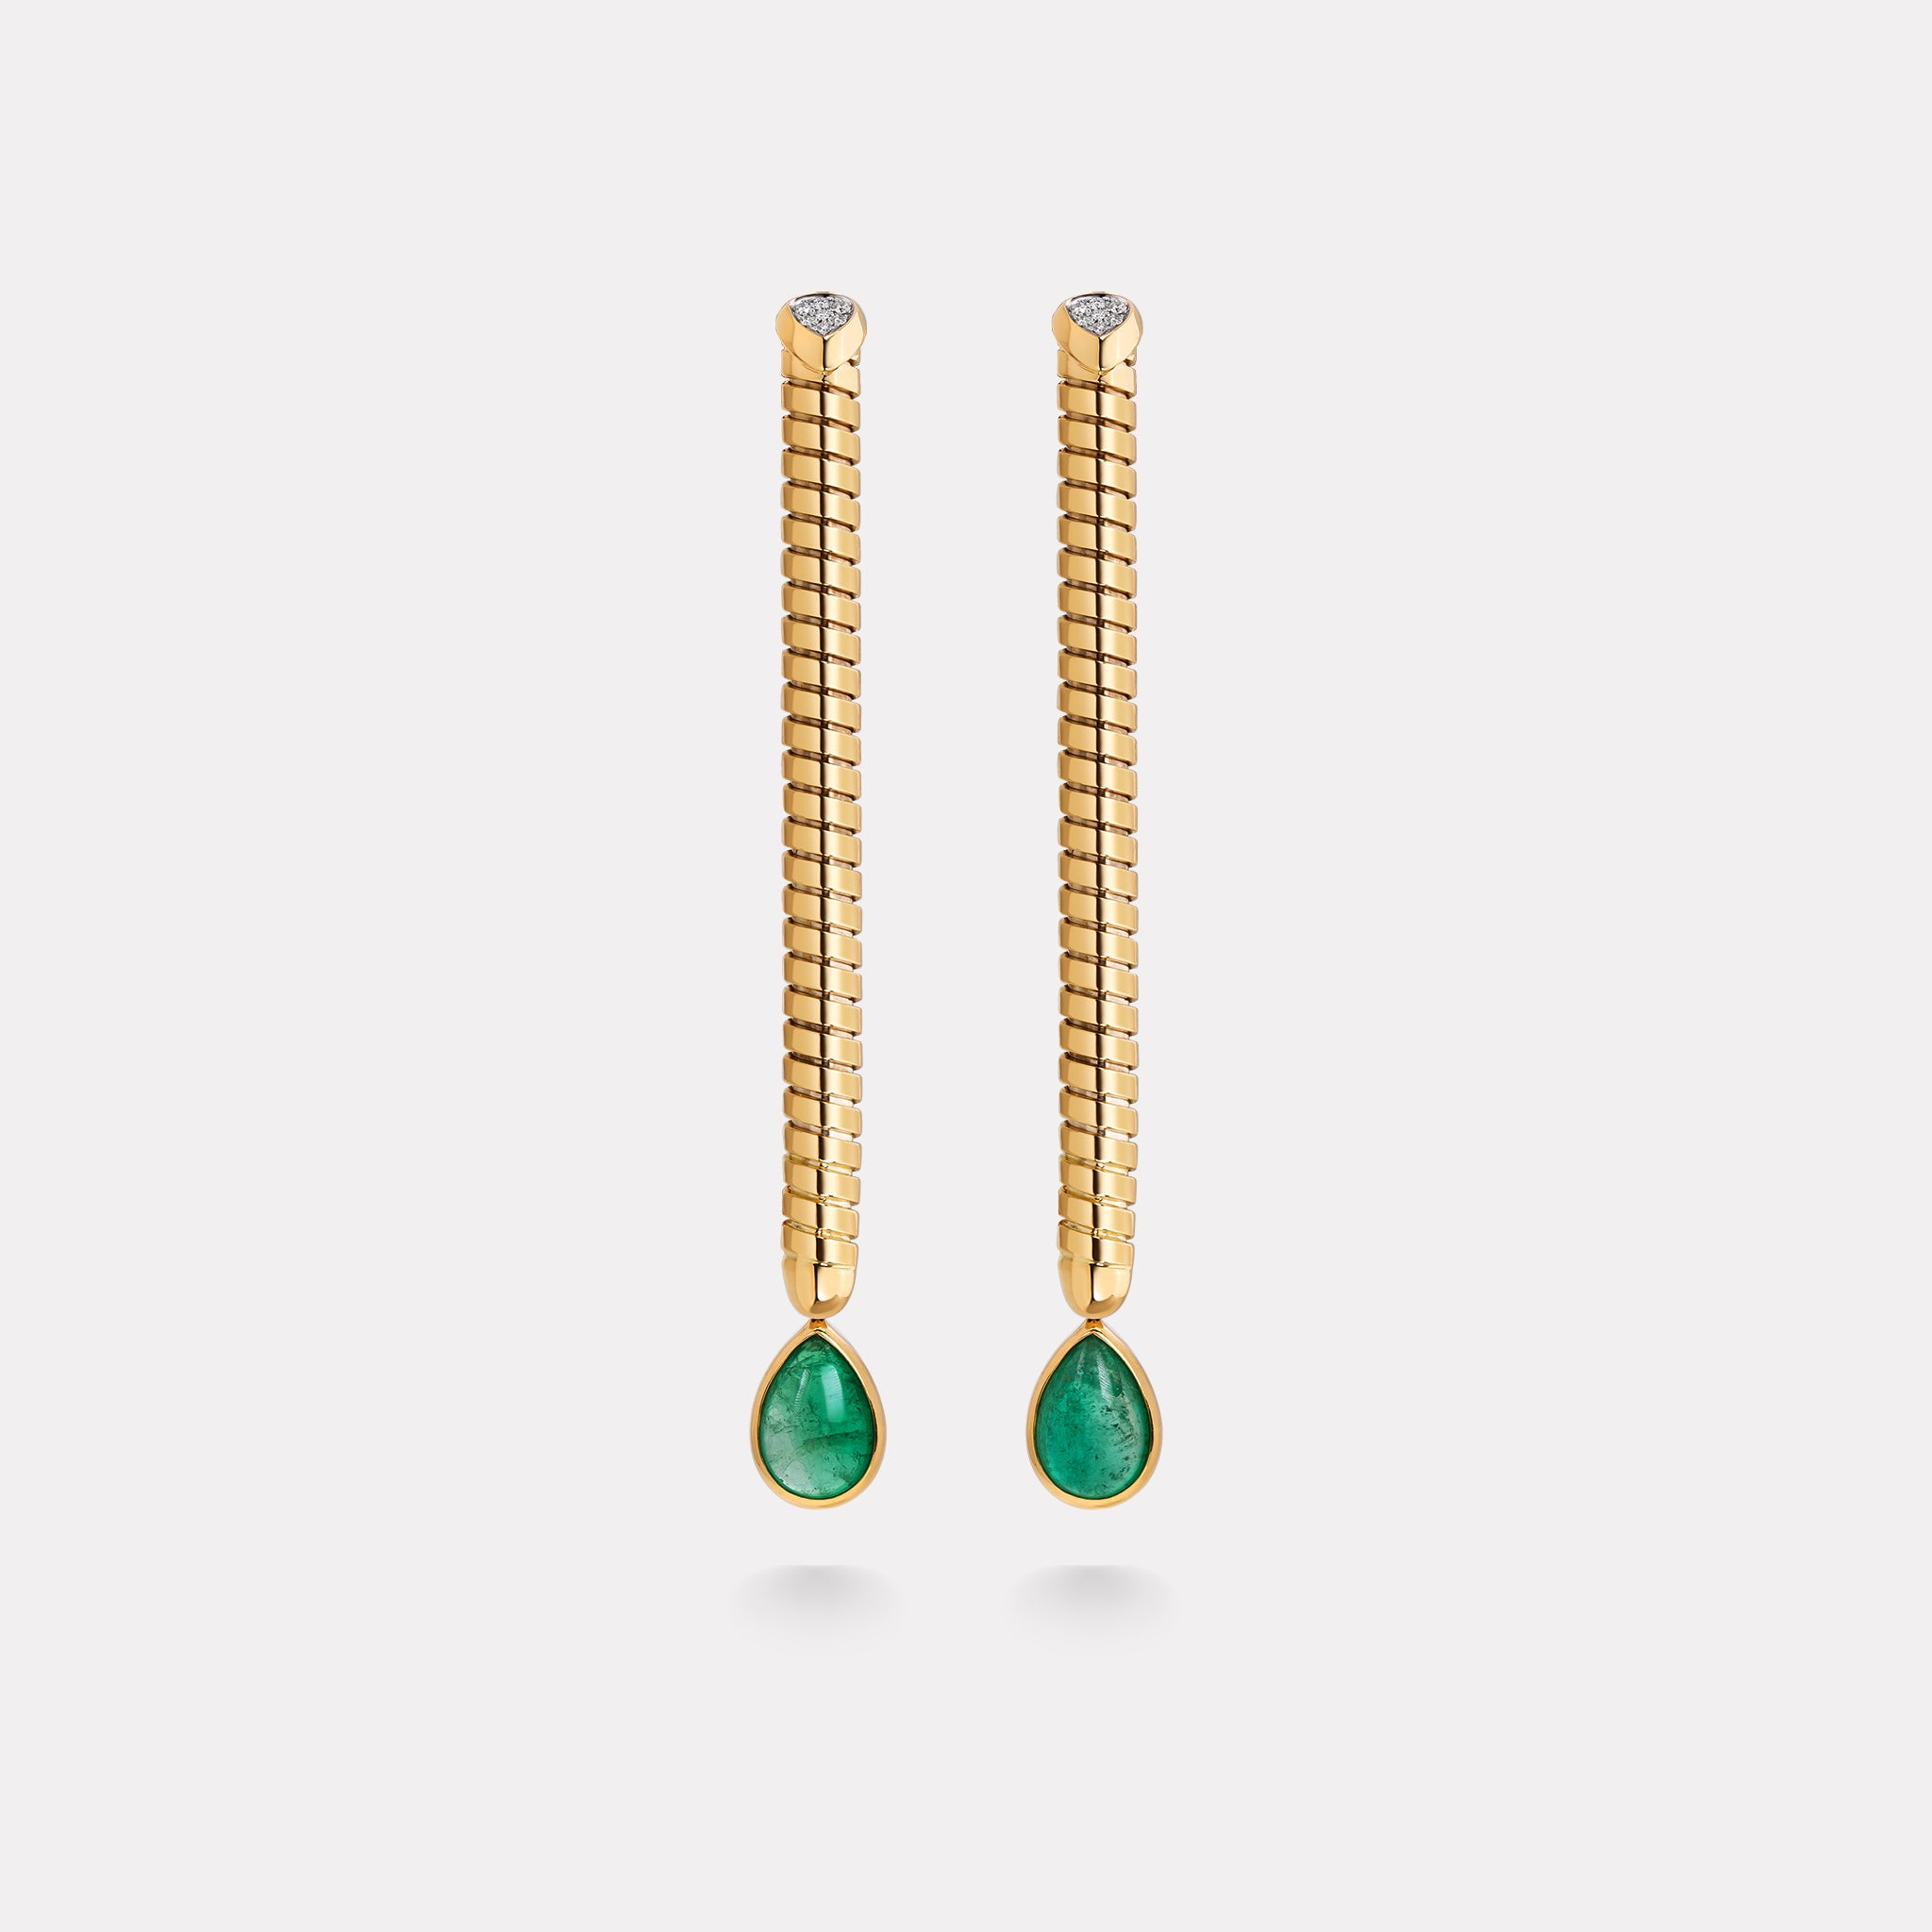 marinab.com, Trisolina Muzo Emerald One of a Kind Drop Earrings